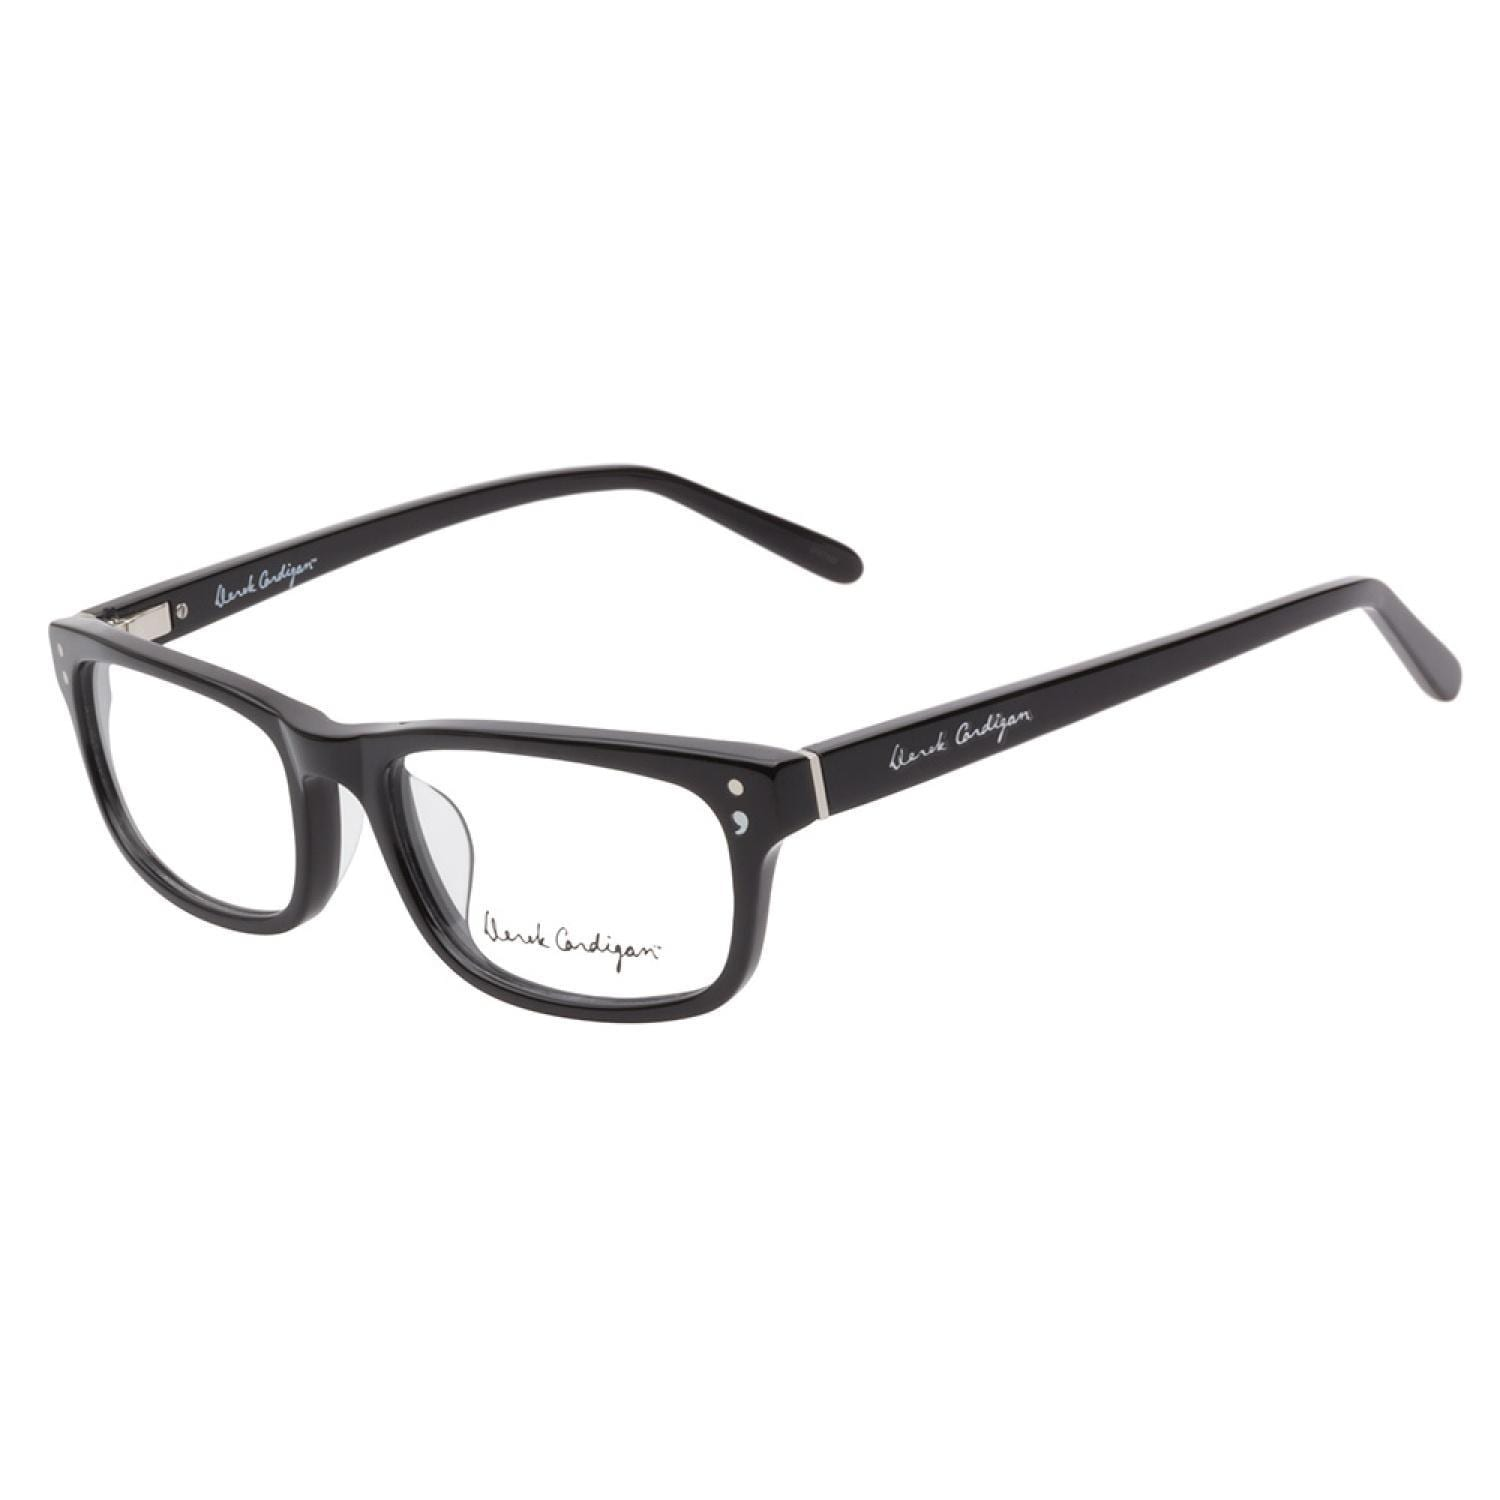 fc325f81c46 Shop Derek Cardigan 7518 Black Prescription Eyeglasses - Free ...